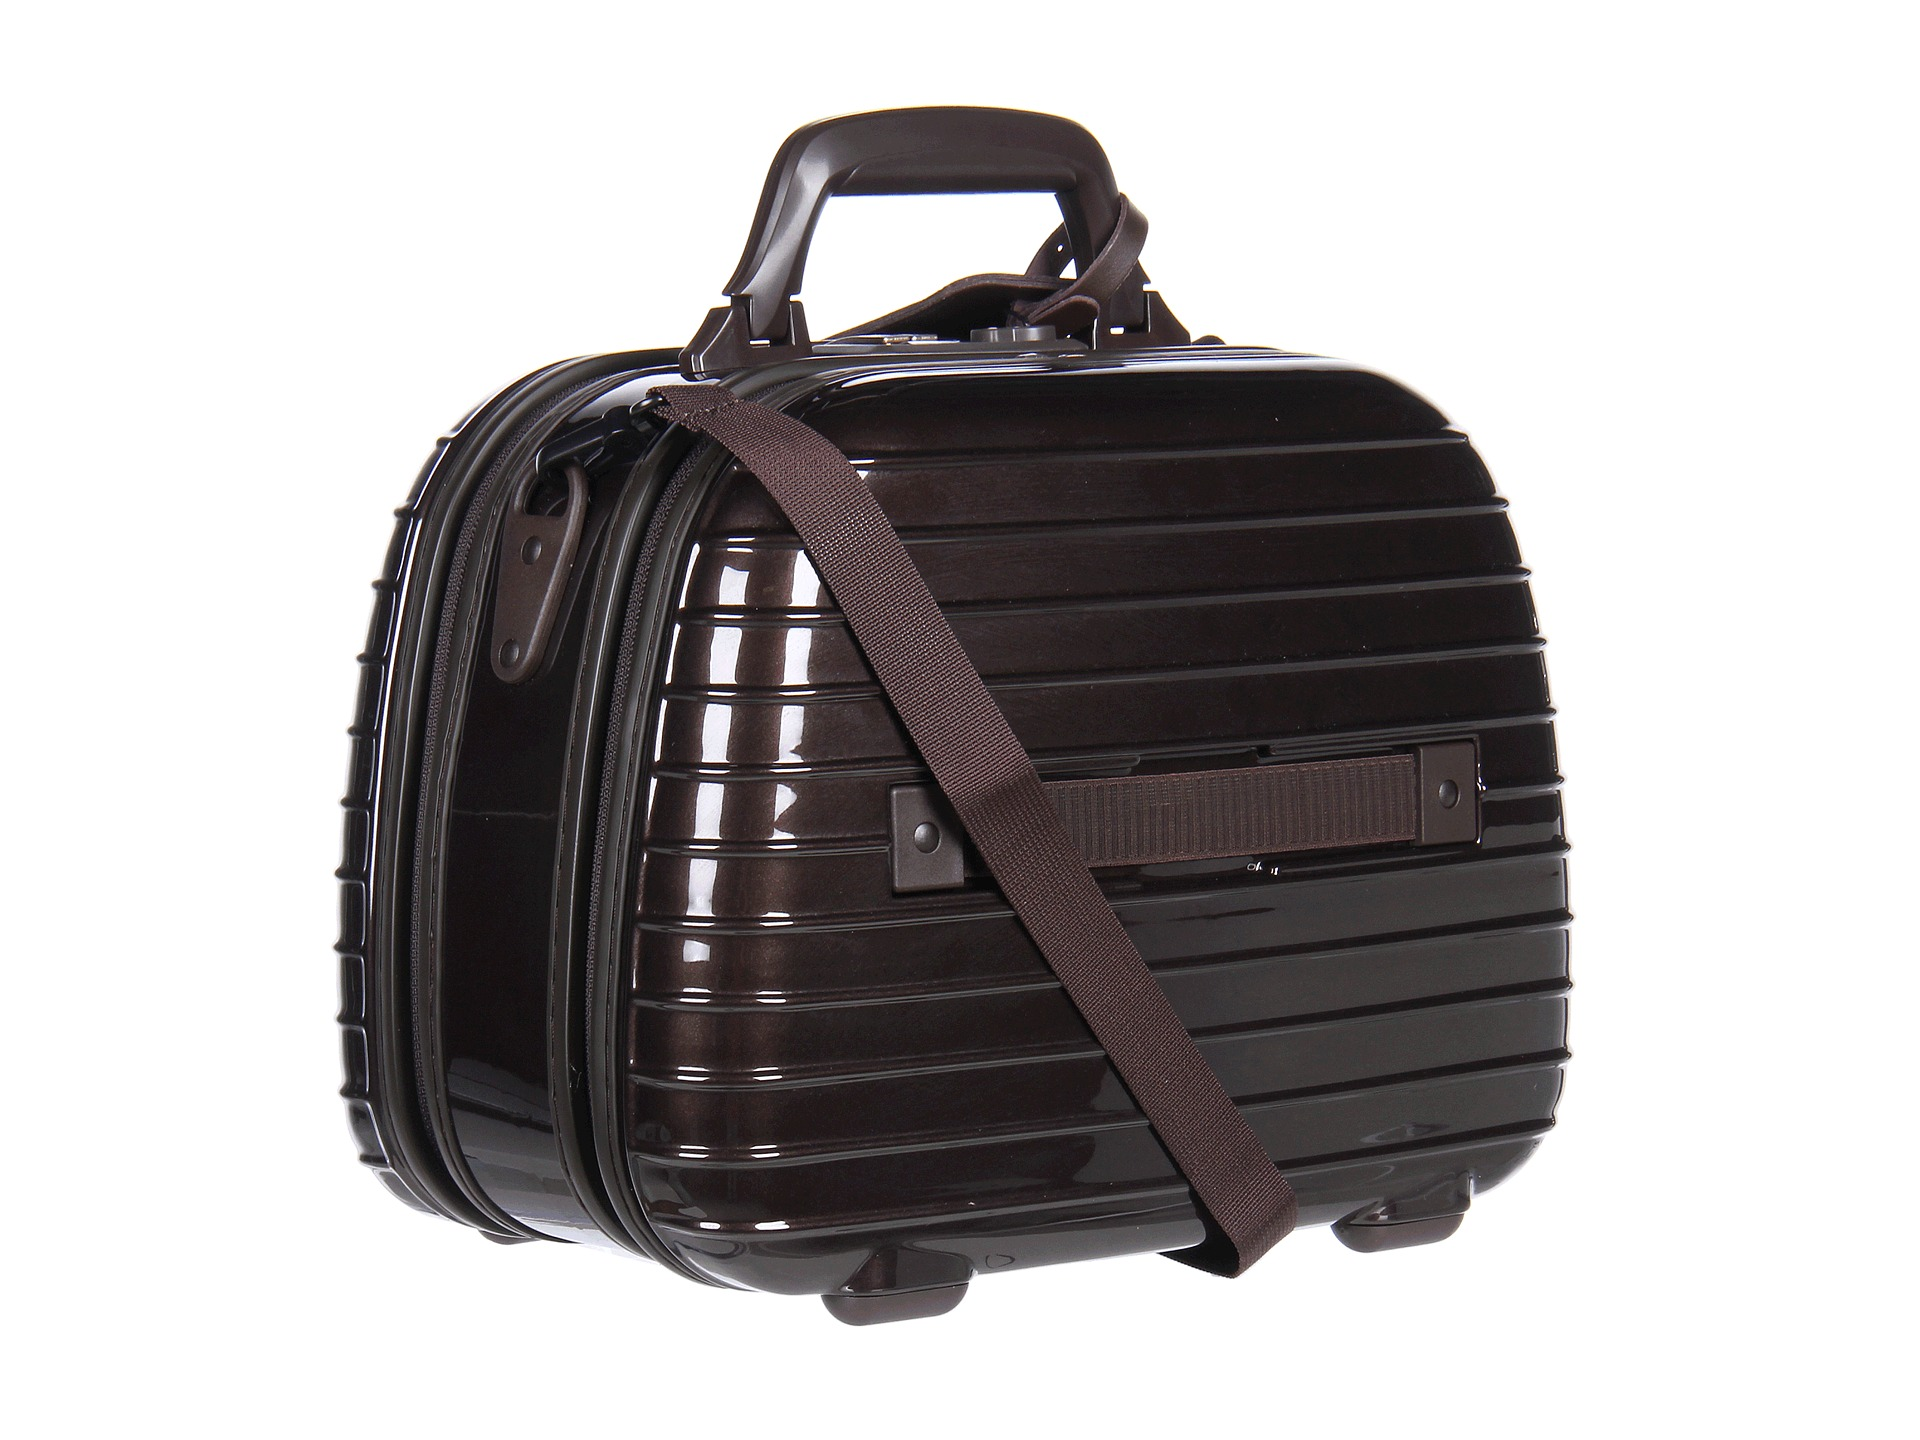 rimowa salsa deluxe beauty case free shipping both ways. Black Bedroom Furniture Sets. Home Design Ideas